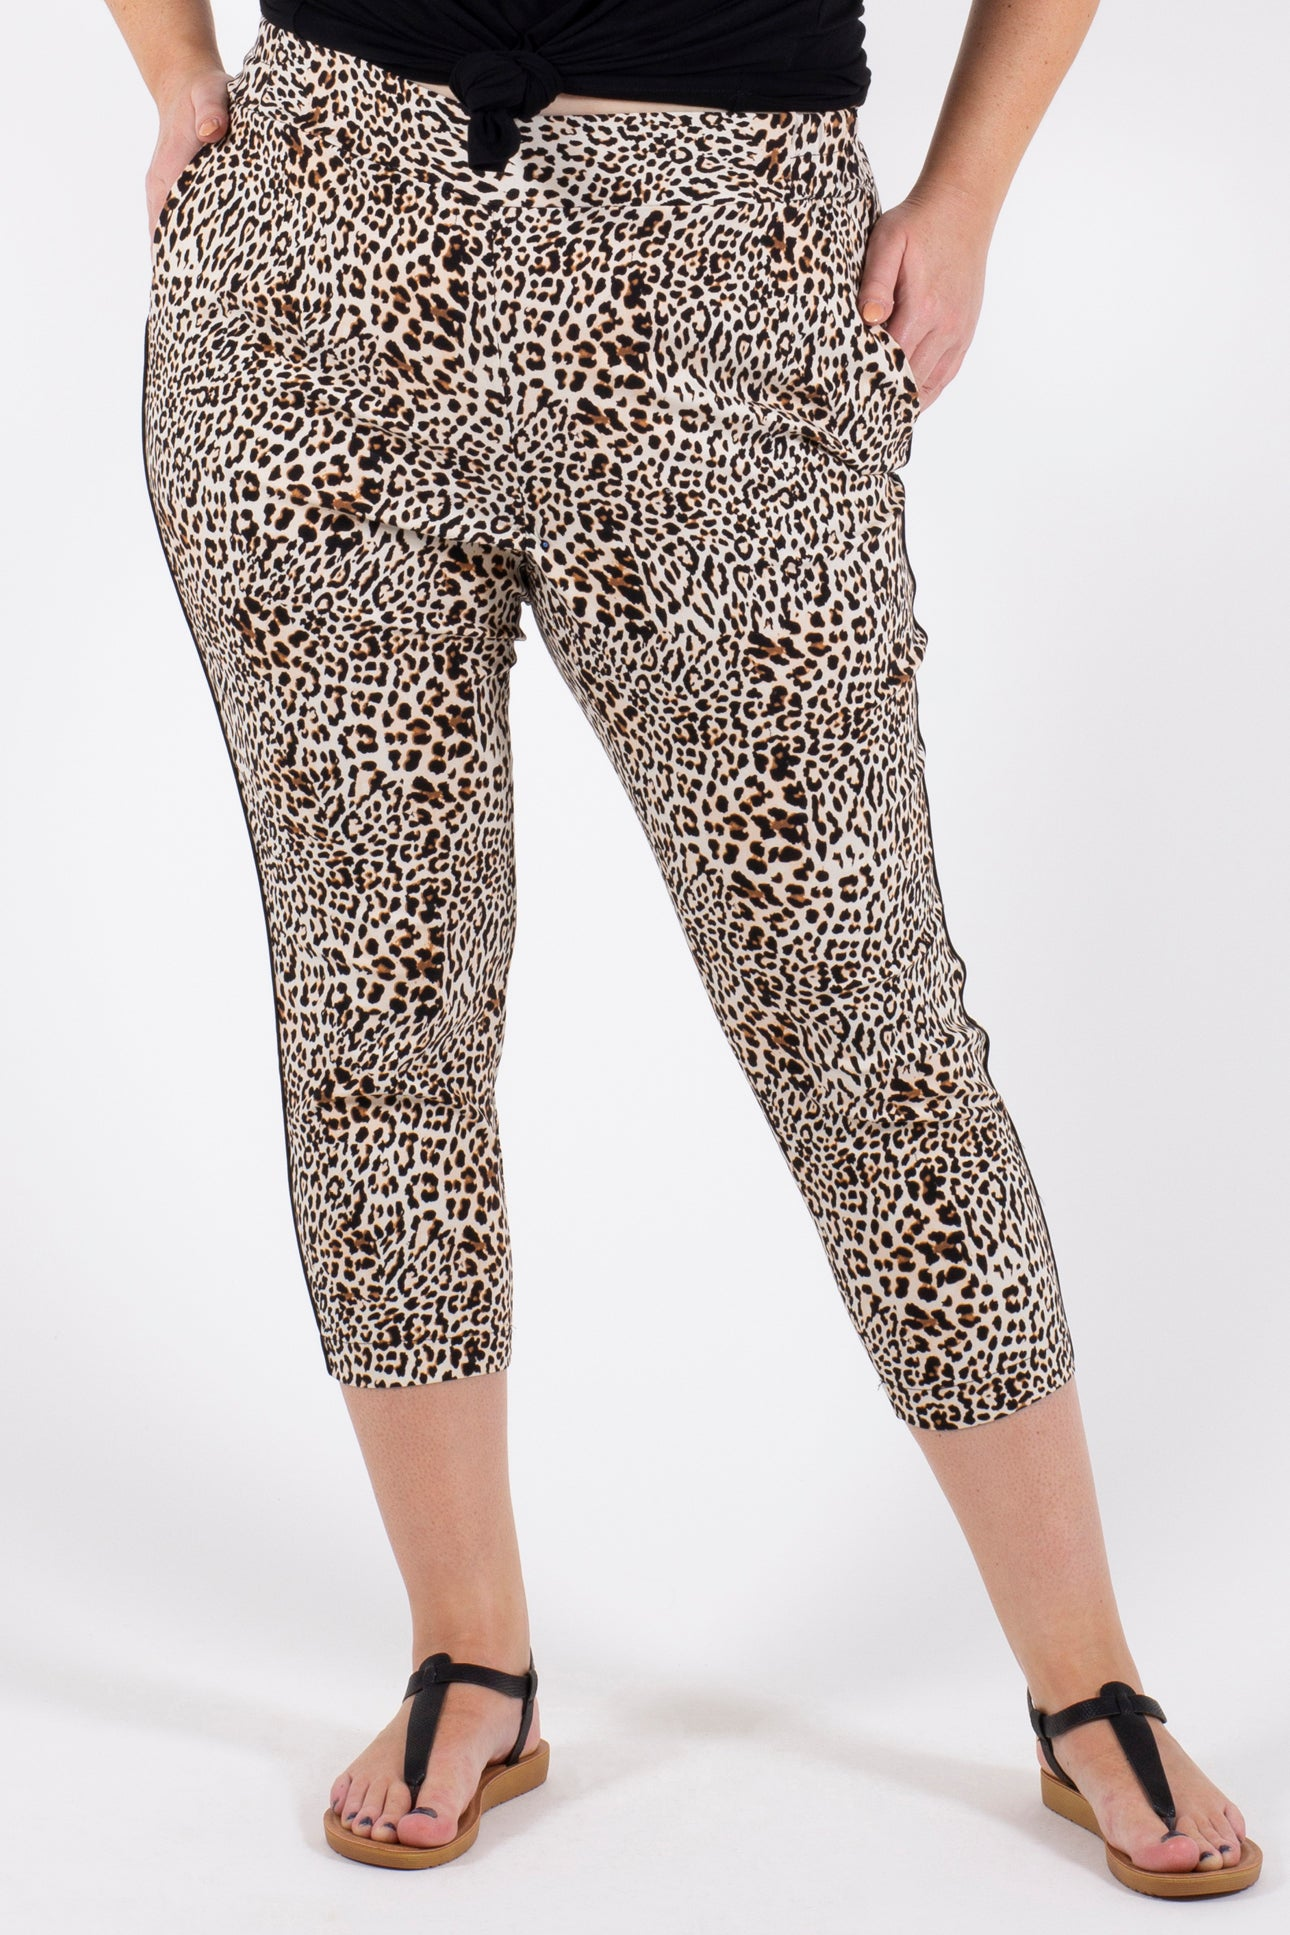 Addicted To Love Crop Pant - Animal Print - Harlow